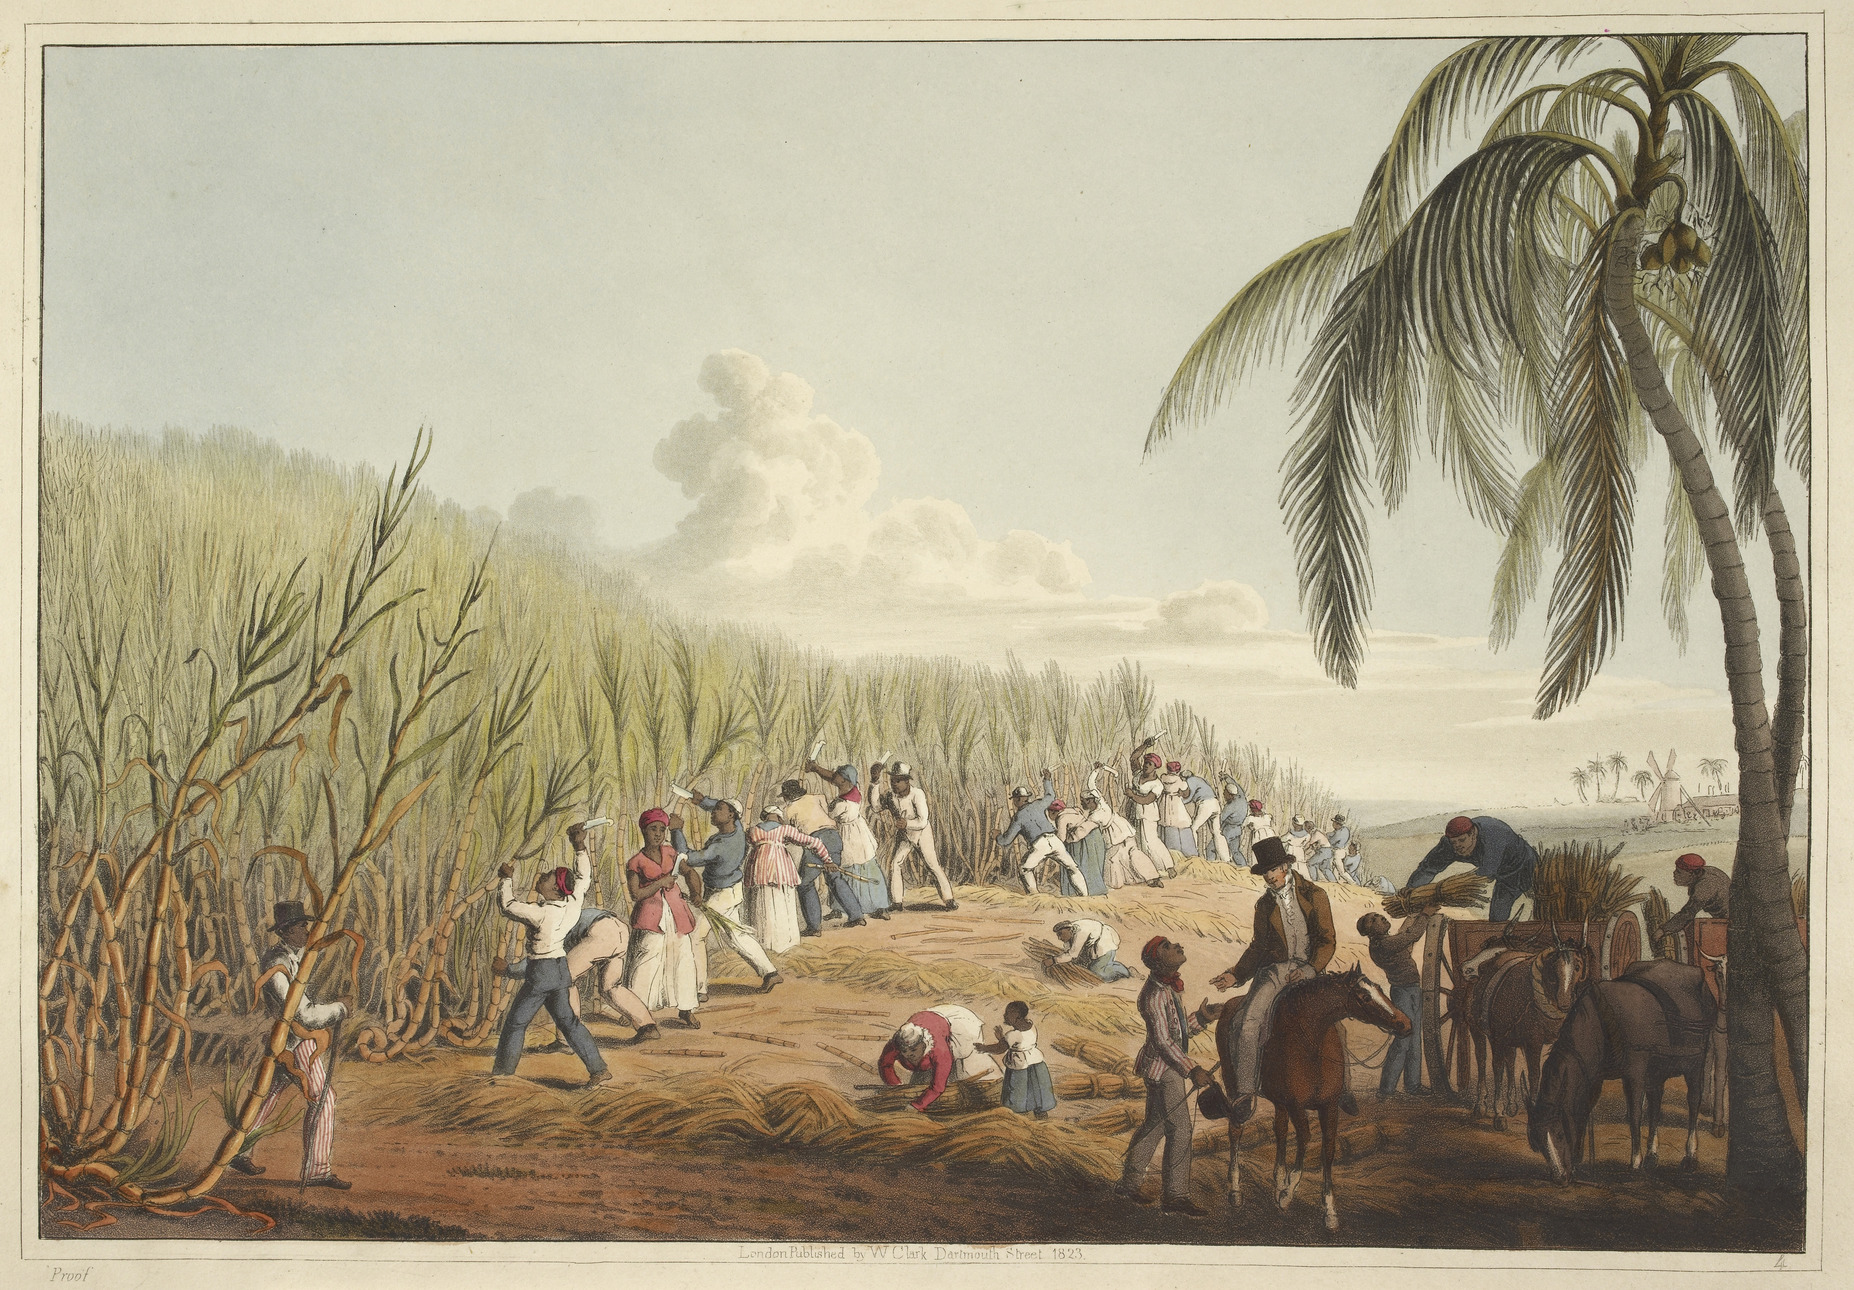 Slaves_cutting_the_sugar_cane_-_Ten_Views_in_the_Island_of_Antigua_1823_plate_IV_-_BL